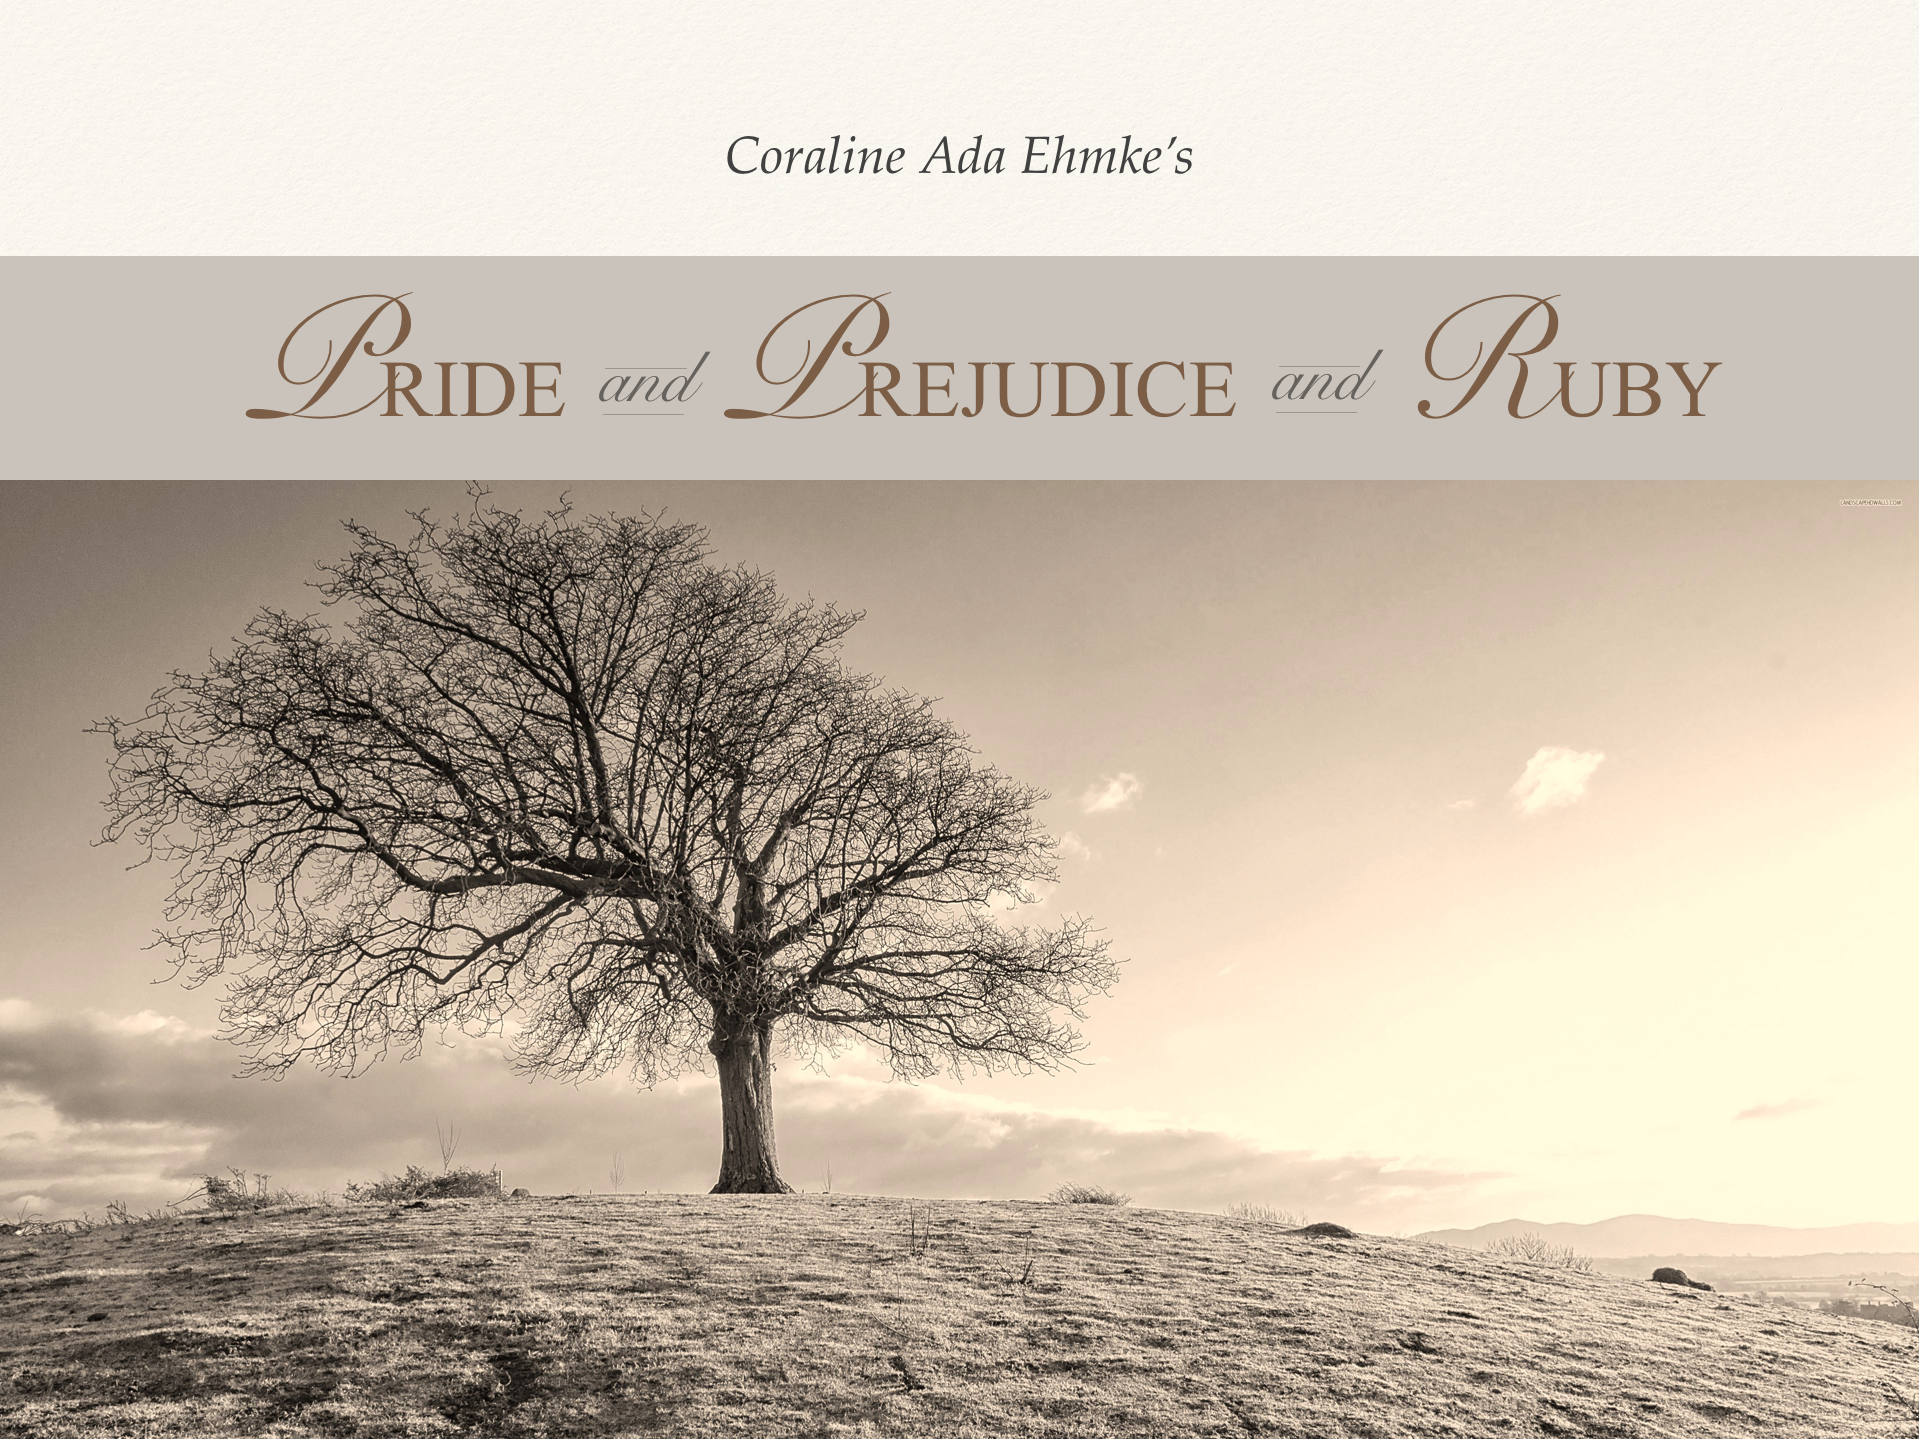 Pride and Prejudice and Ruby